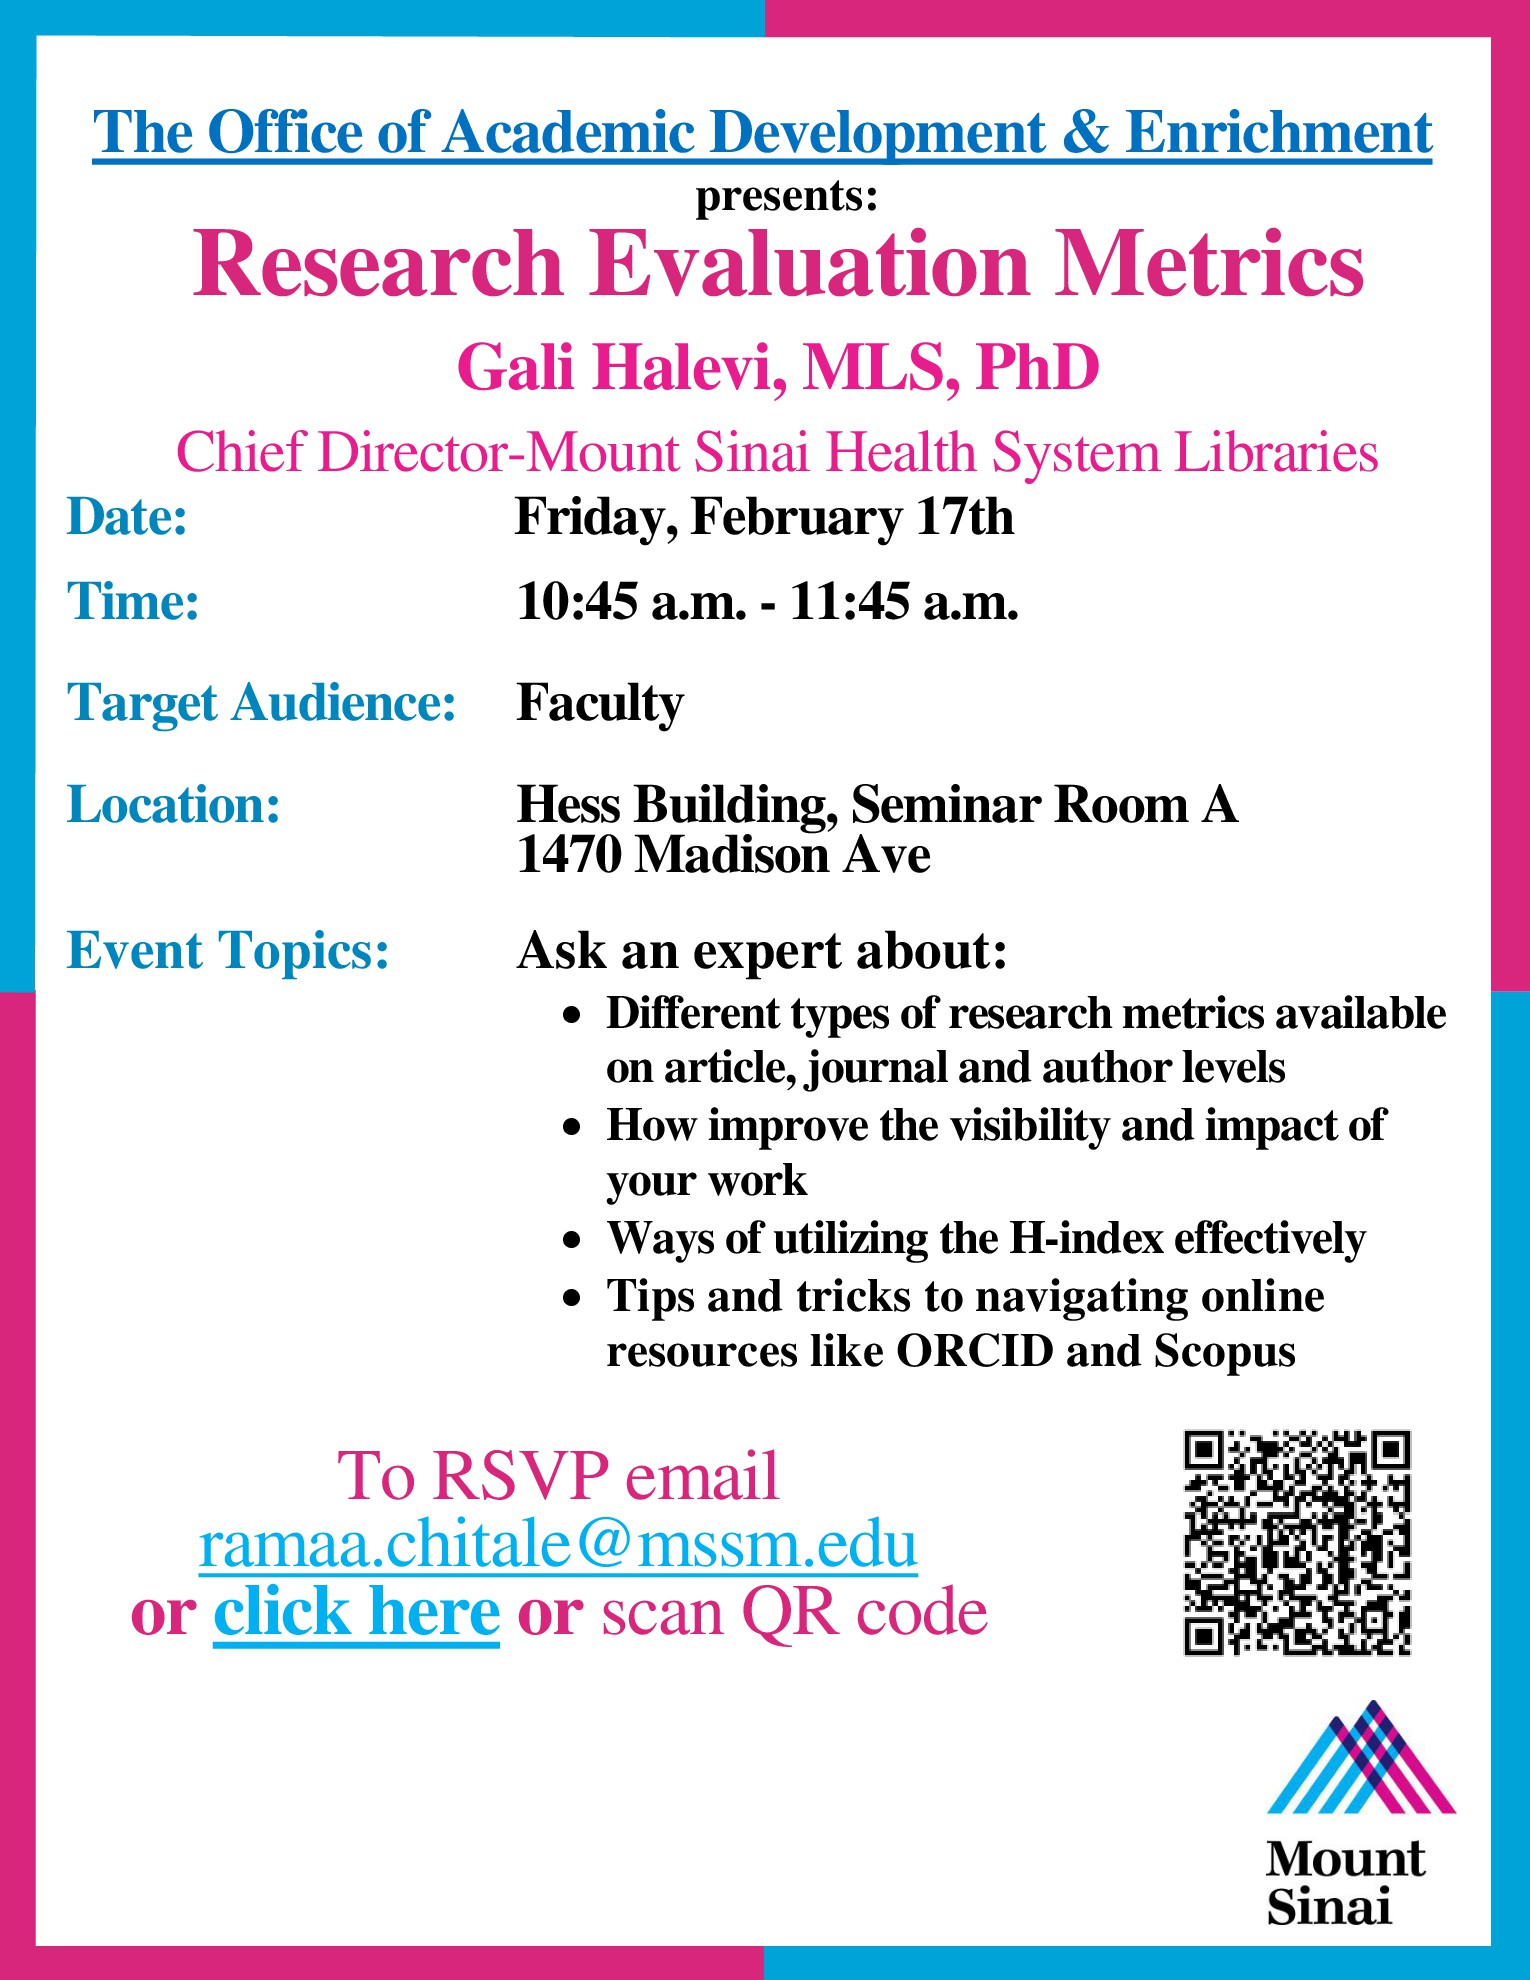 "Office of Academic Development & Enrichment & Dr. Gali Halevi present ""Research Evaluation Metrics"""